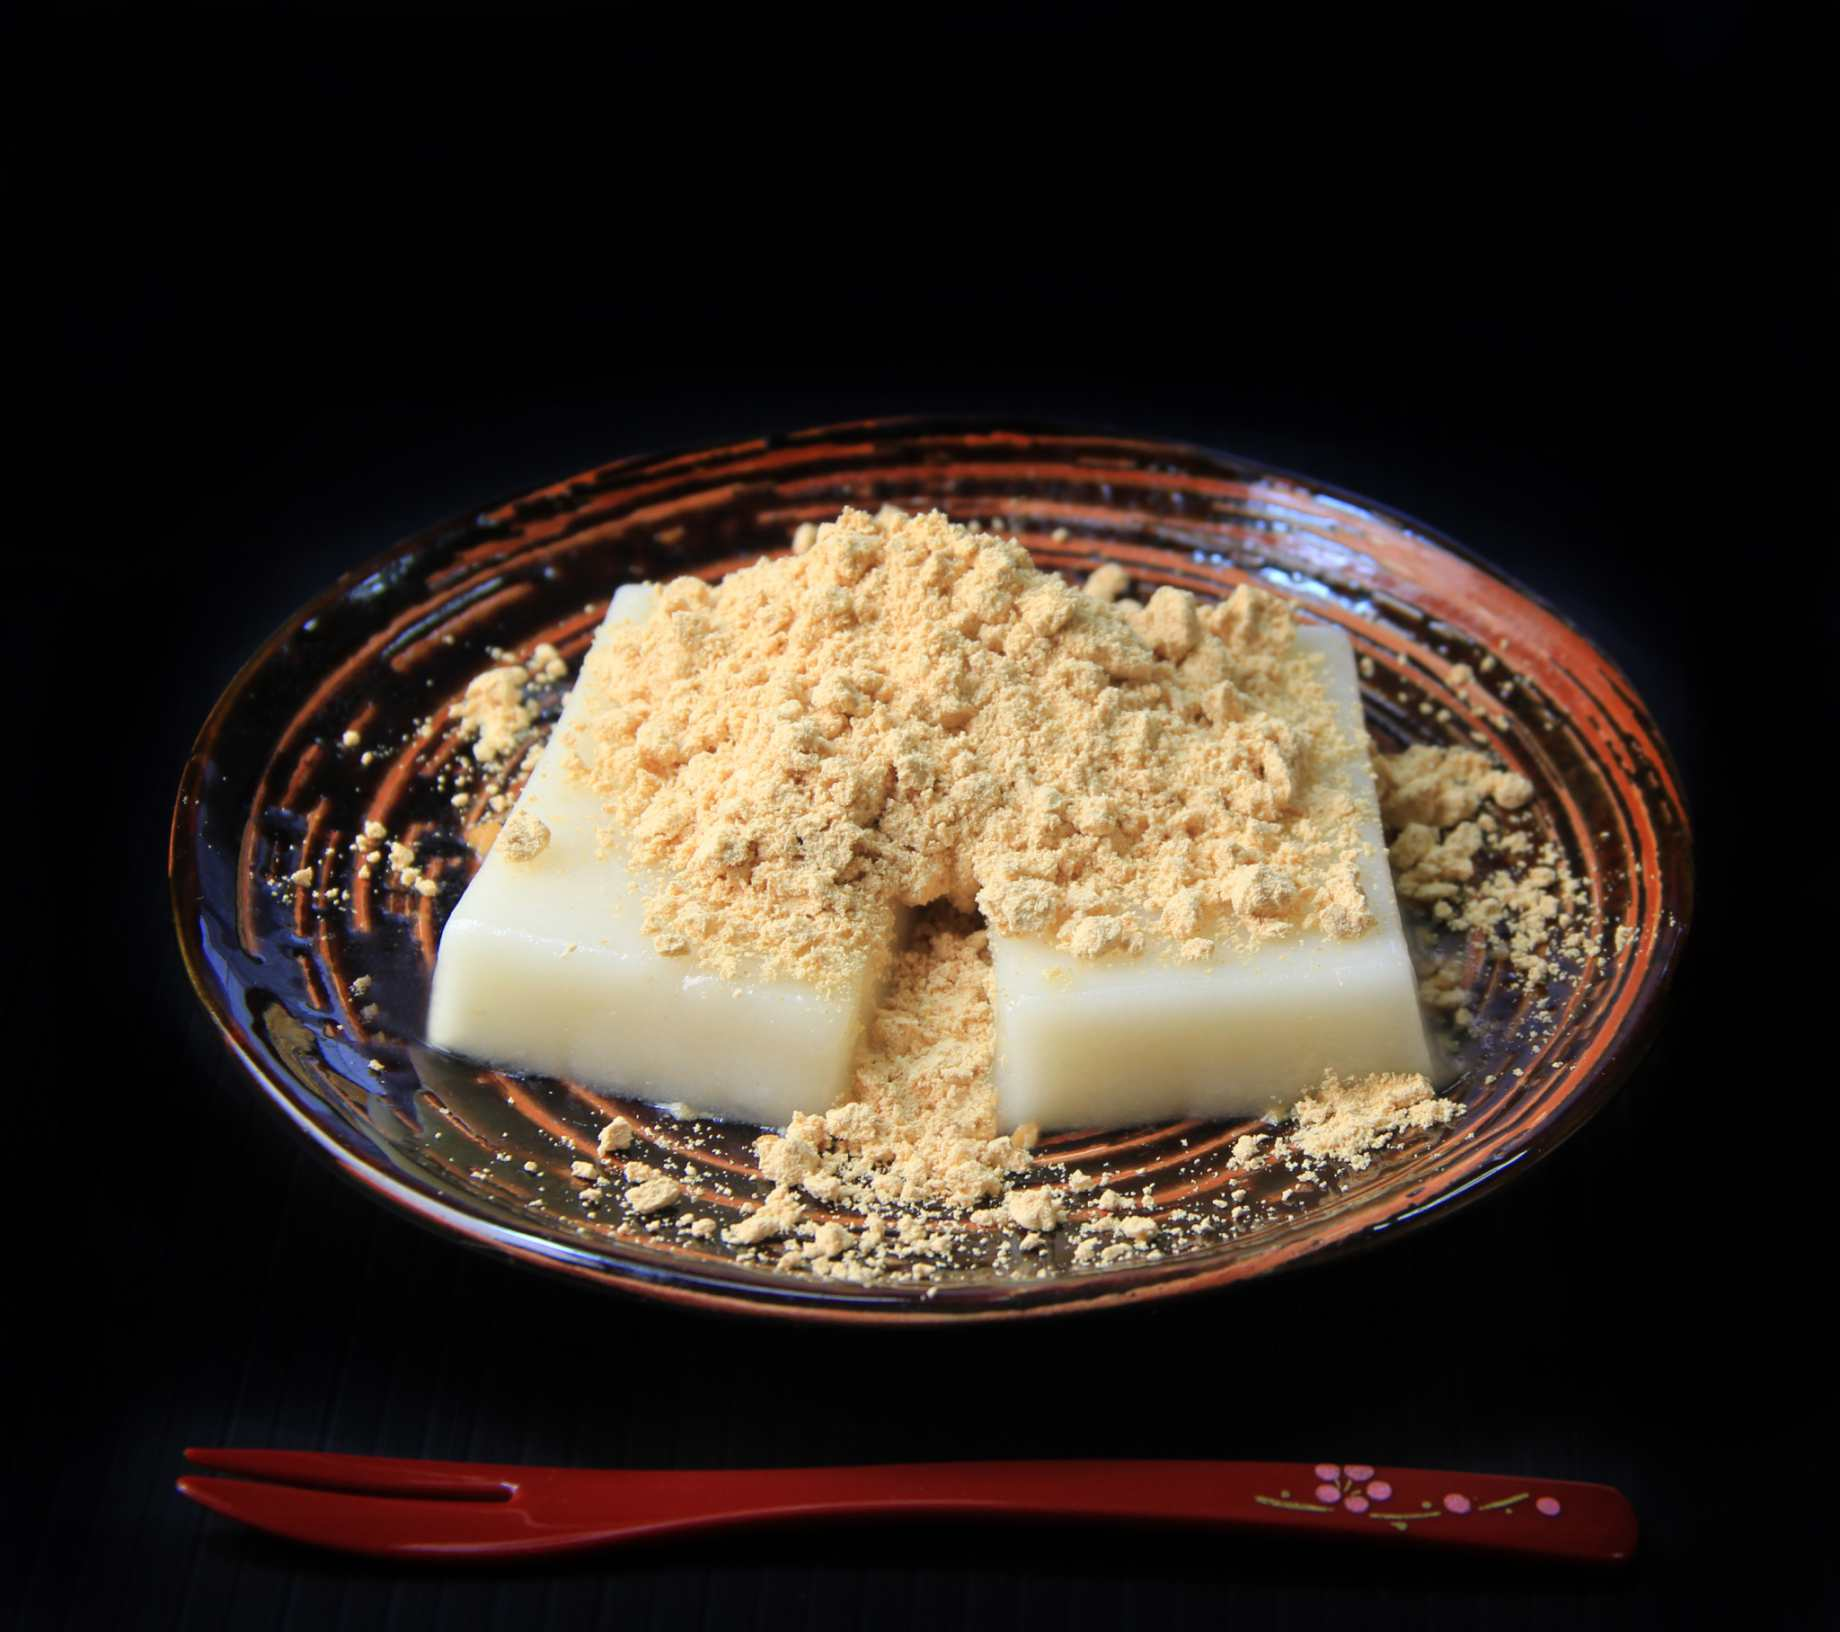 A plate of mochi dusted with sweet kinako